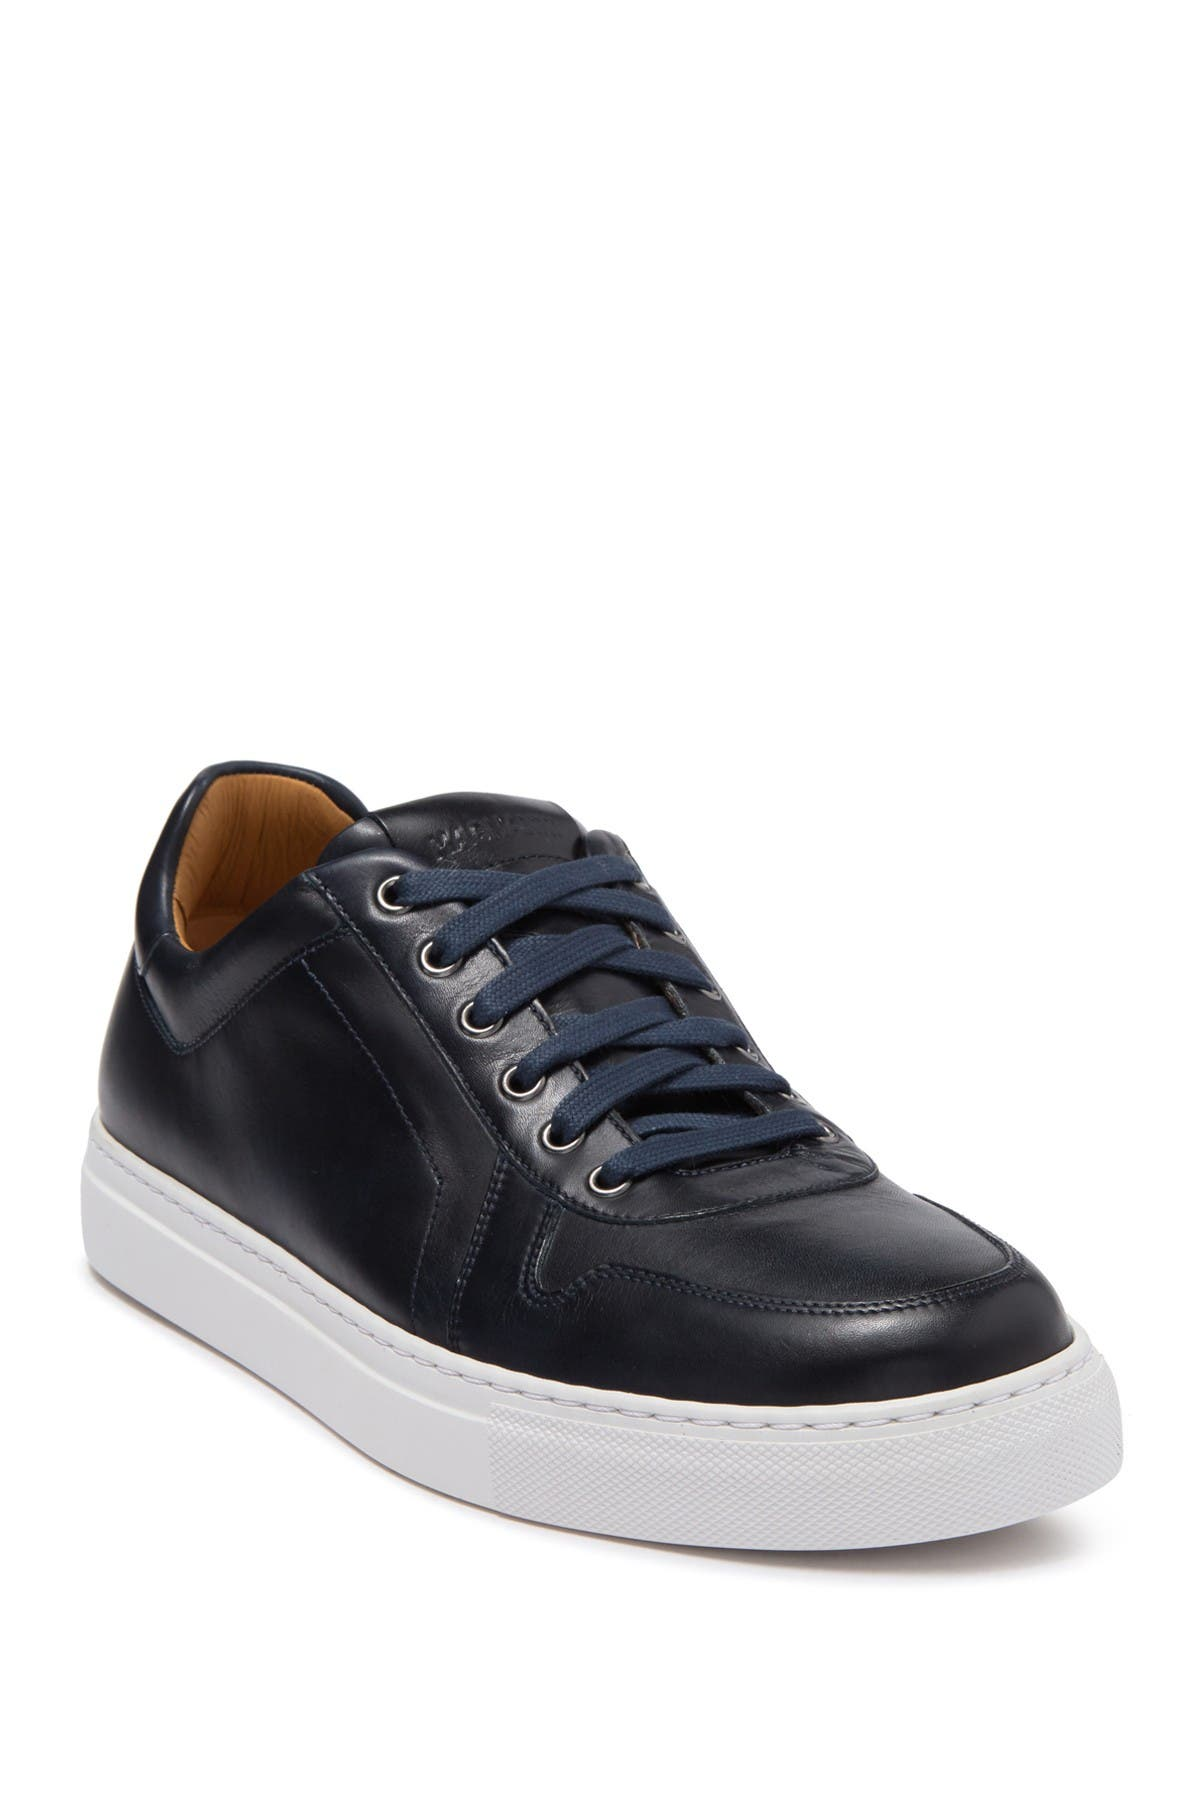 Image of Magnanni Bobbie Leather Sneaker